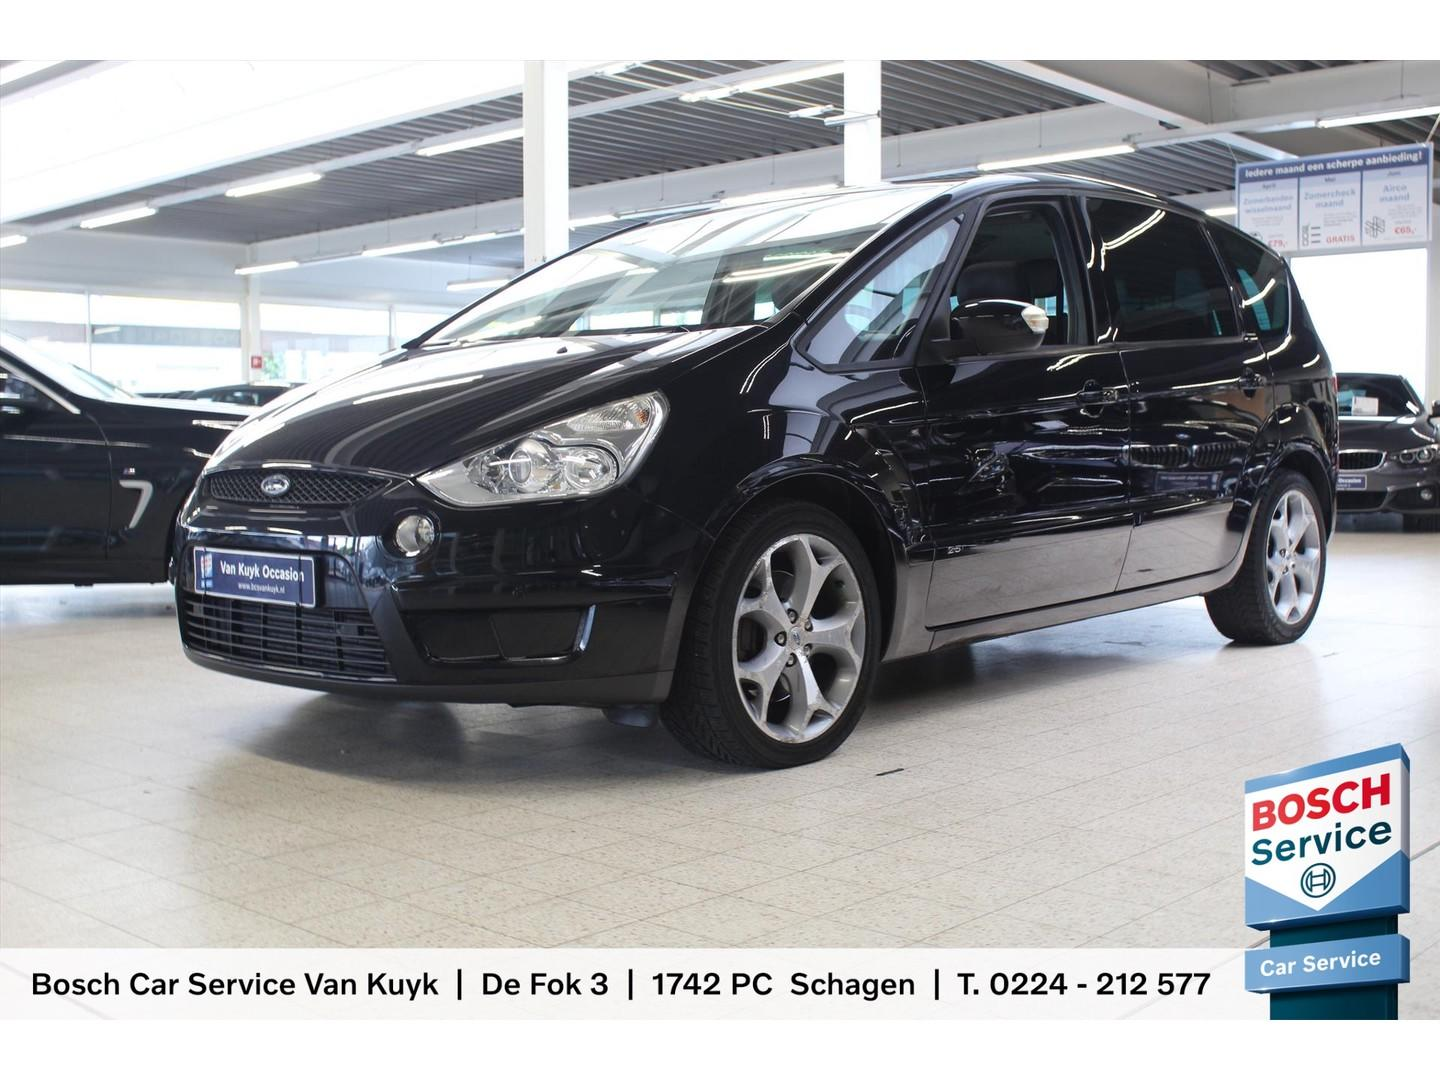 Ford S-max 2.5 20v turbo 220pk climaat control / cruise control